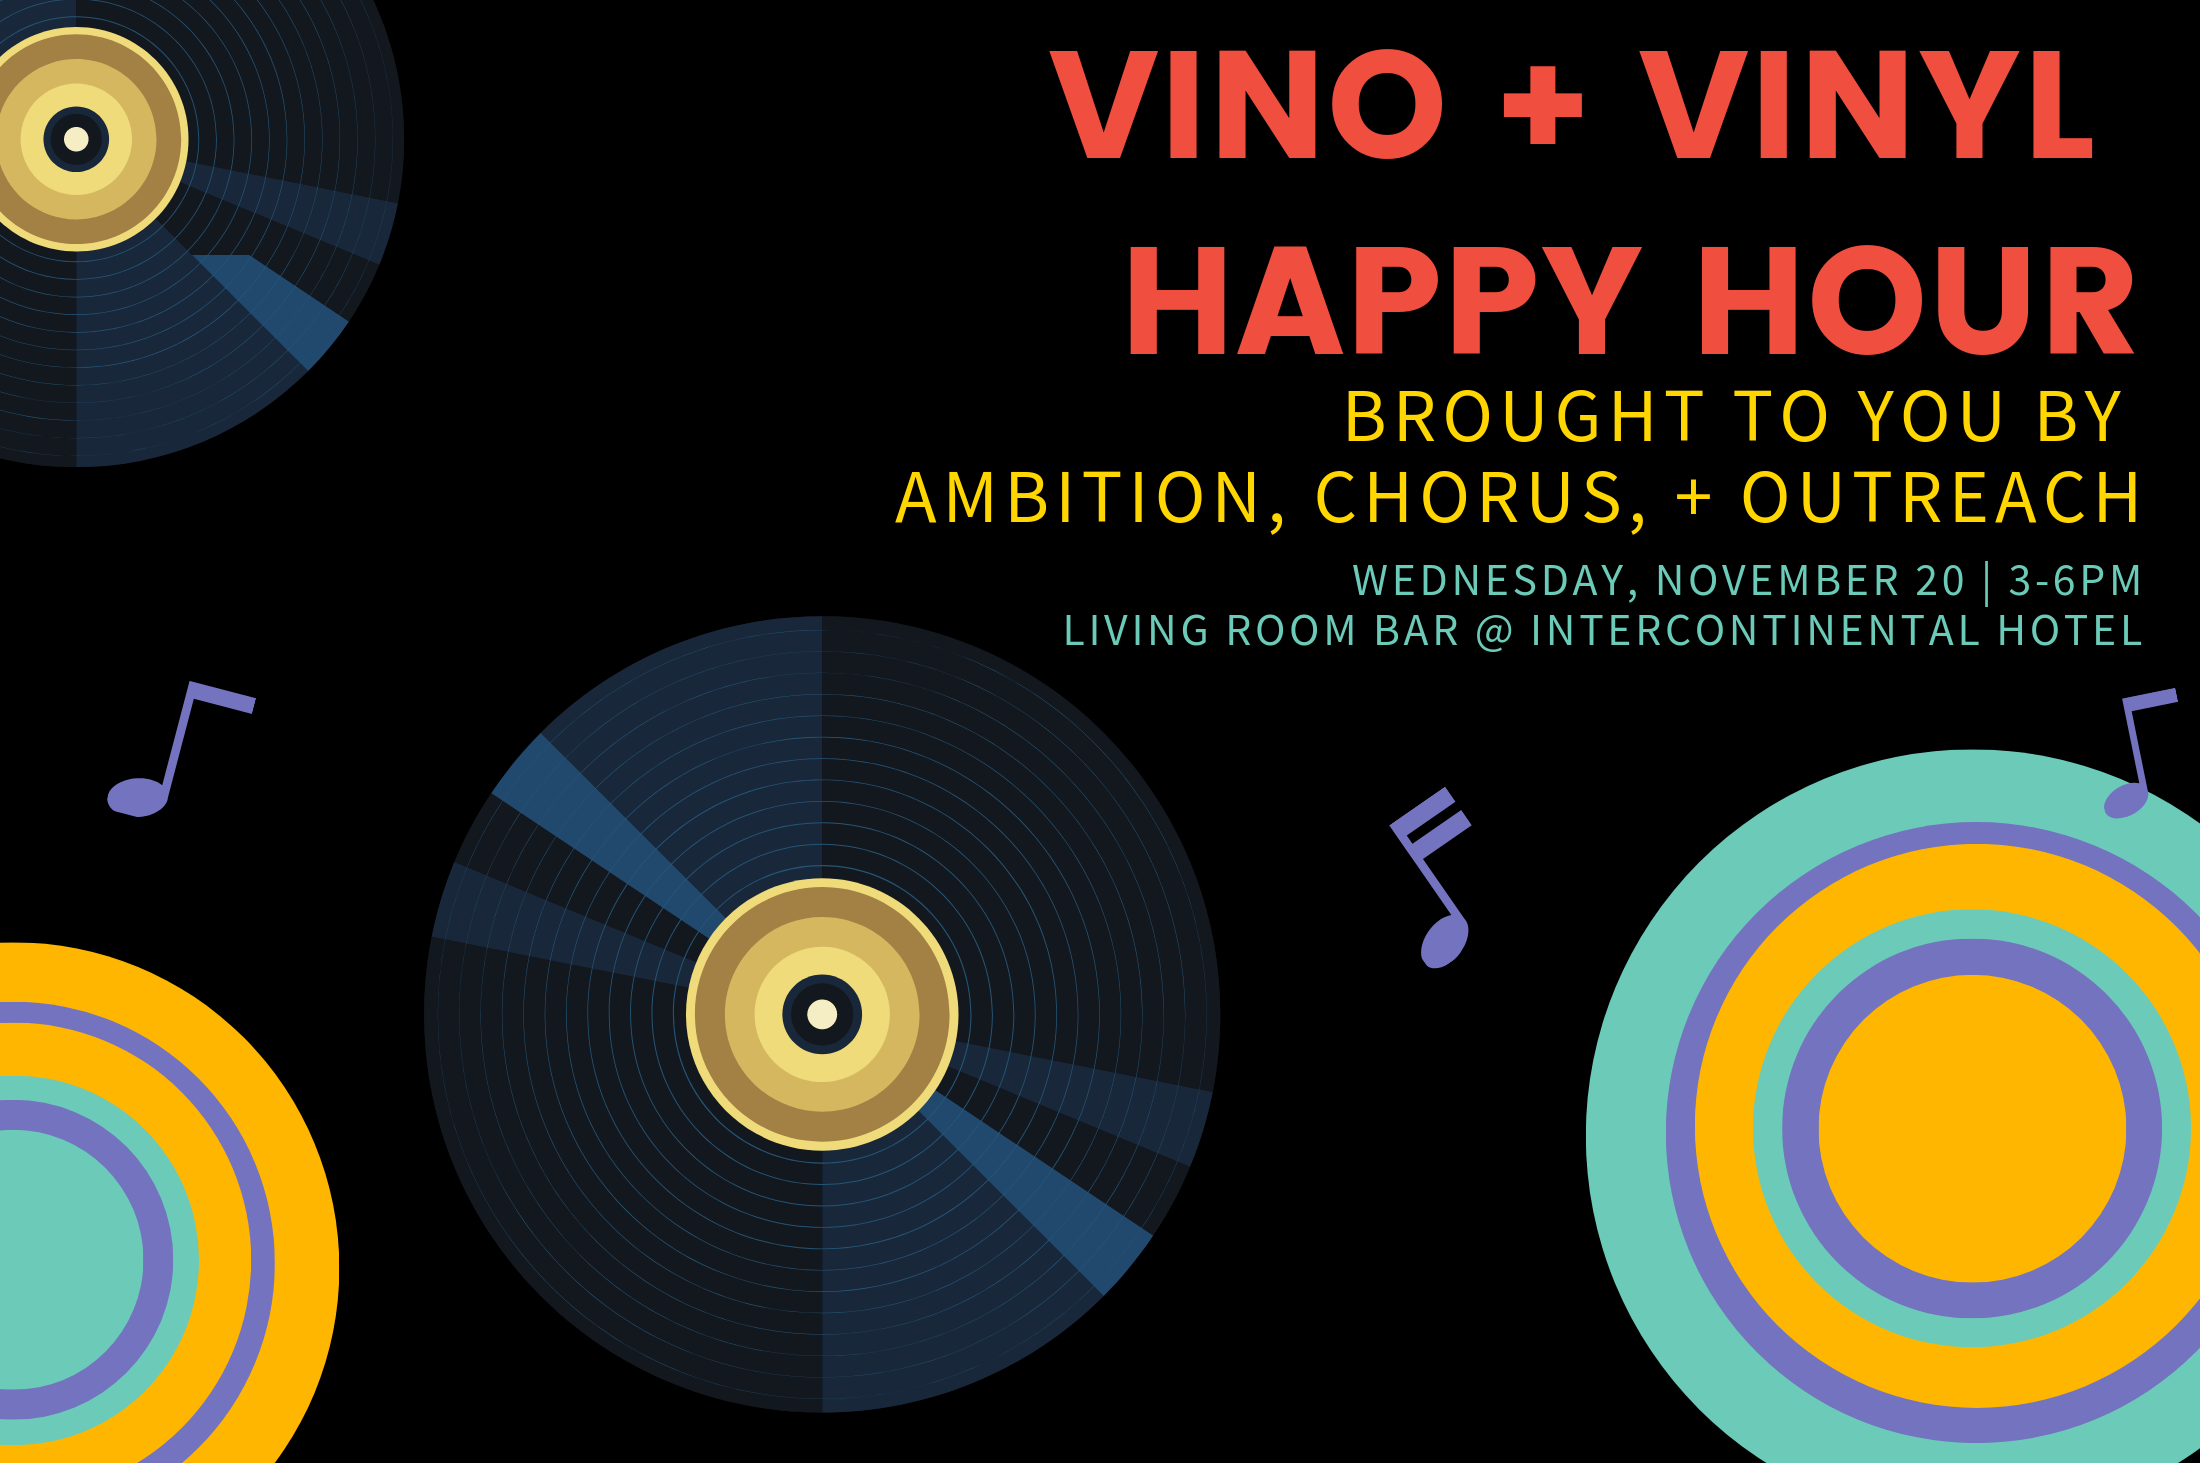 Vino + Vinyl Happy Hour